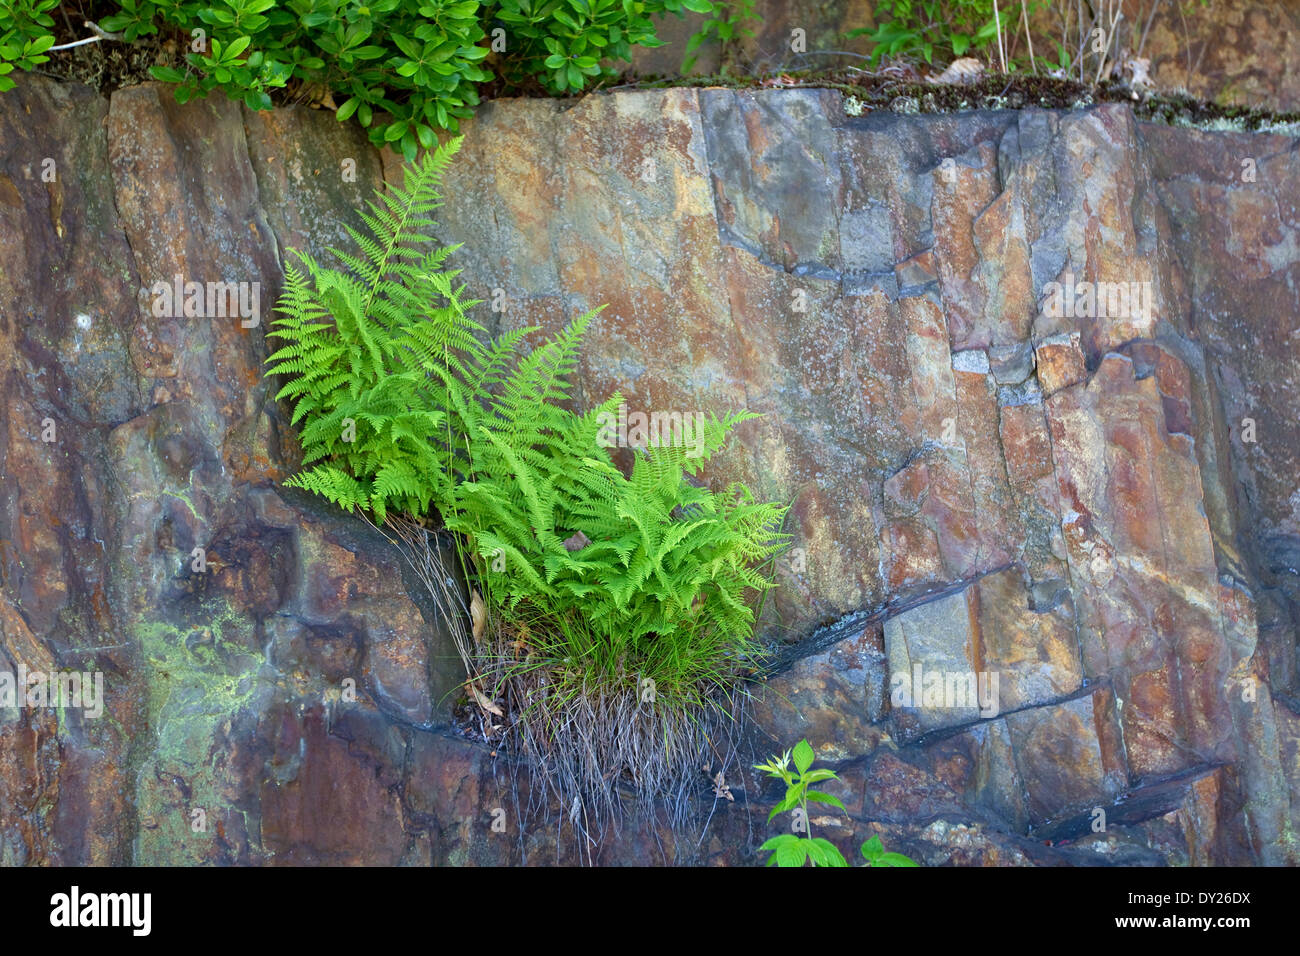 Ferns grow from crack in rock - Stock Image